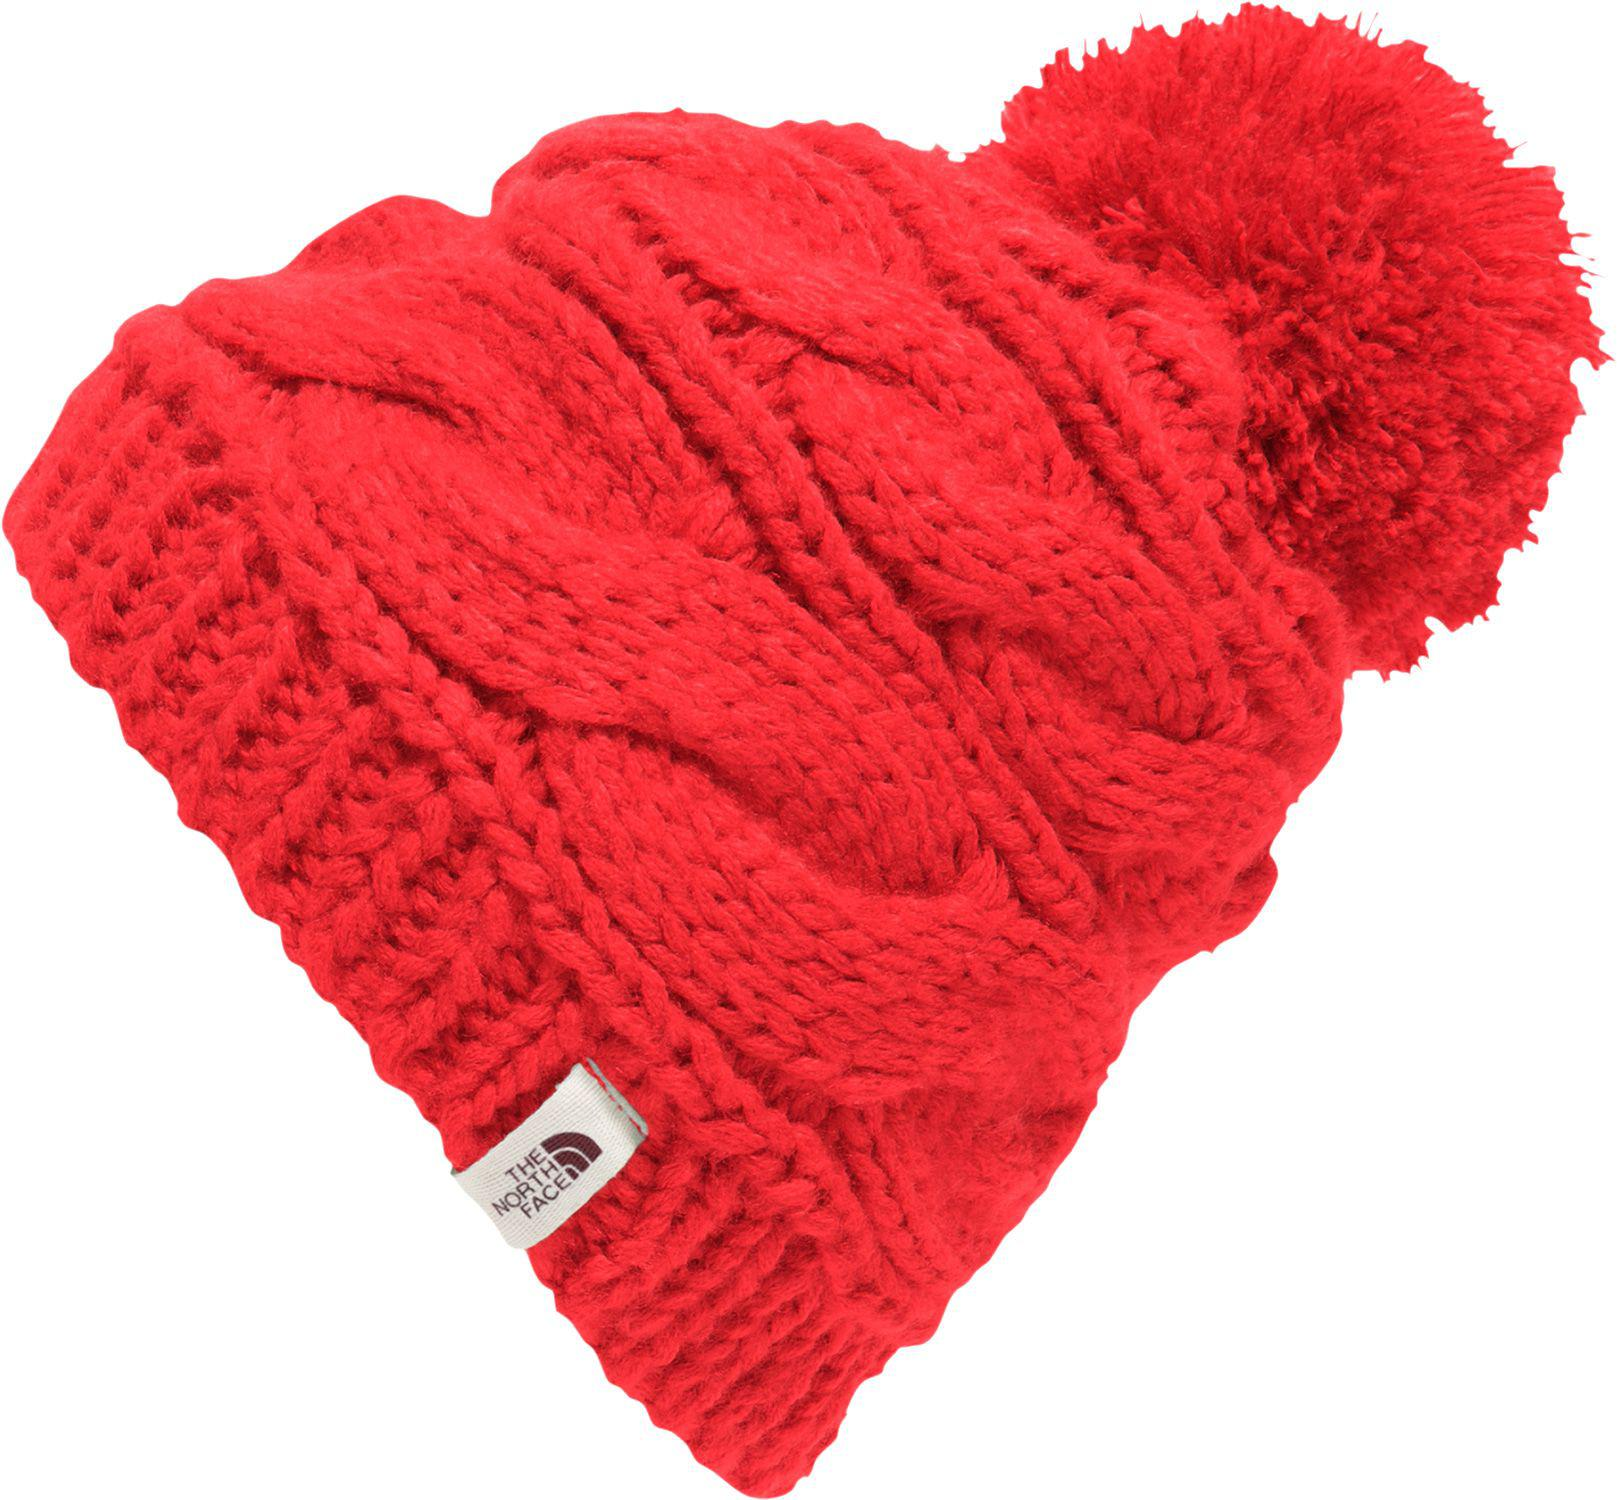 c12e859b50ed2 Lyst - The North Face Triple Cable Pom Beanie in Red